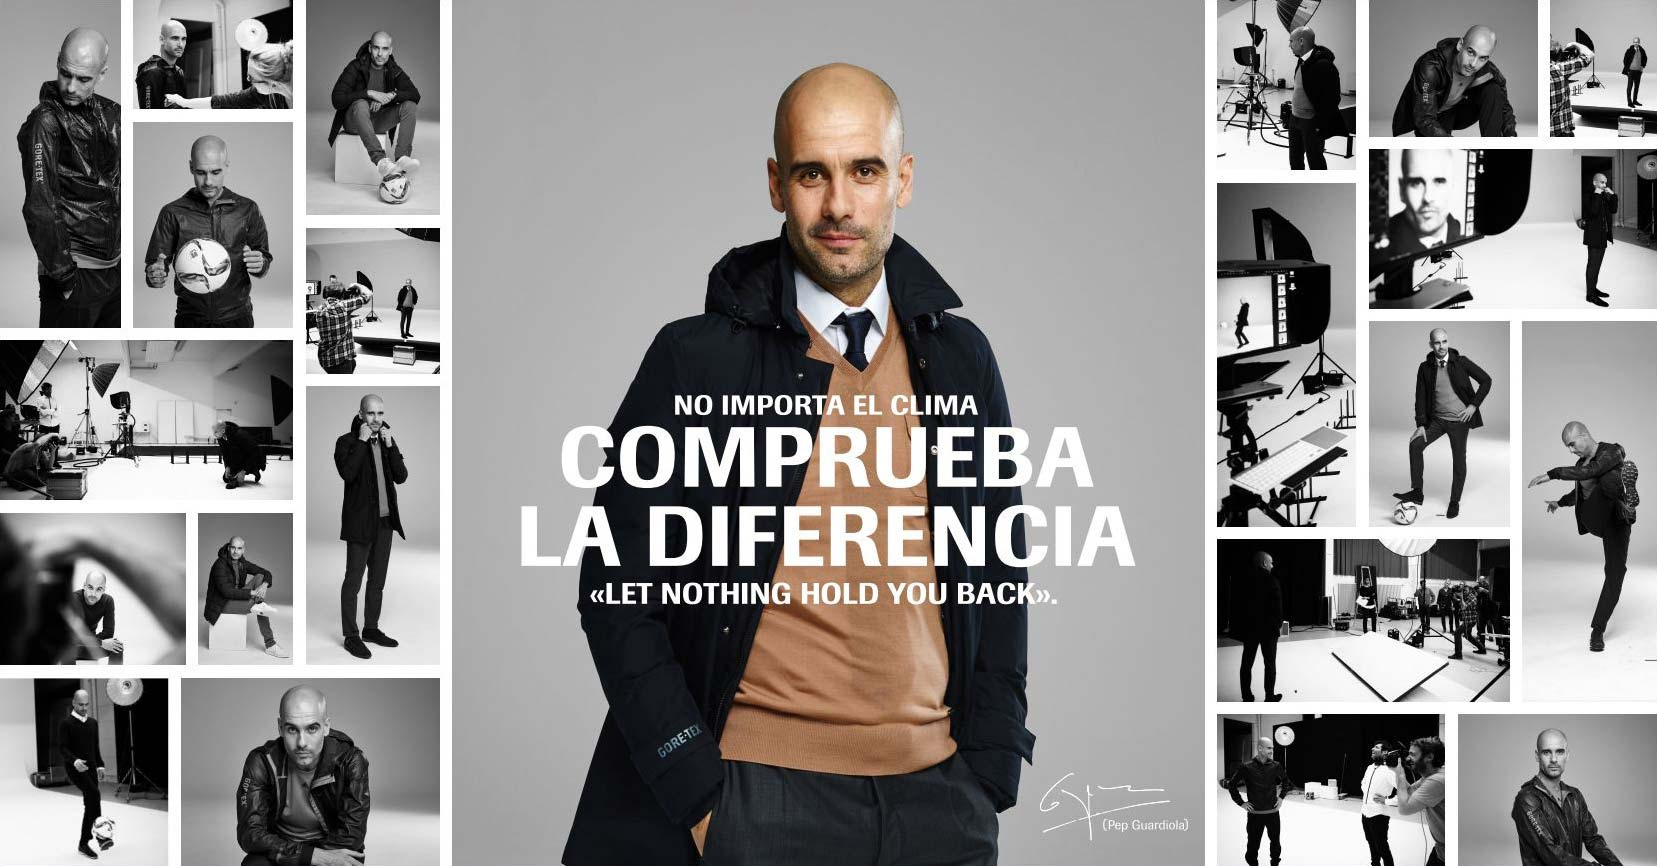 MANUEL FERRIGATO EXPERIENCE THE DIFFERENCE